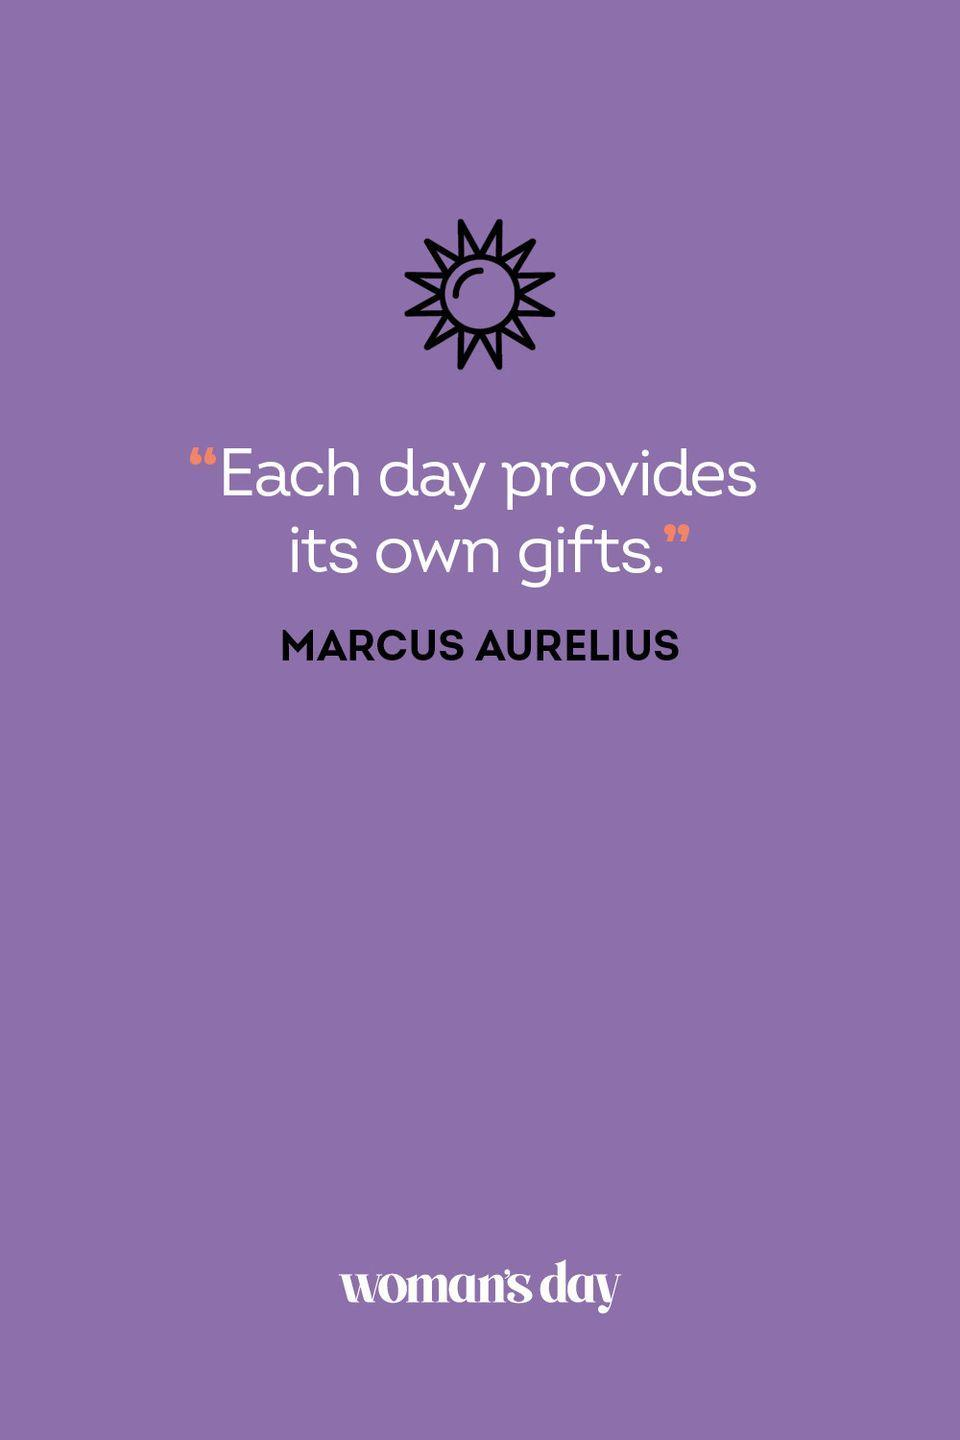 <p>Each day provides its own gifts.</p>